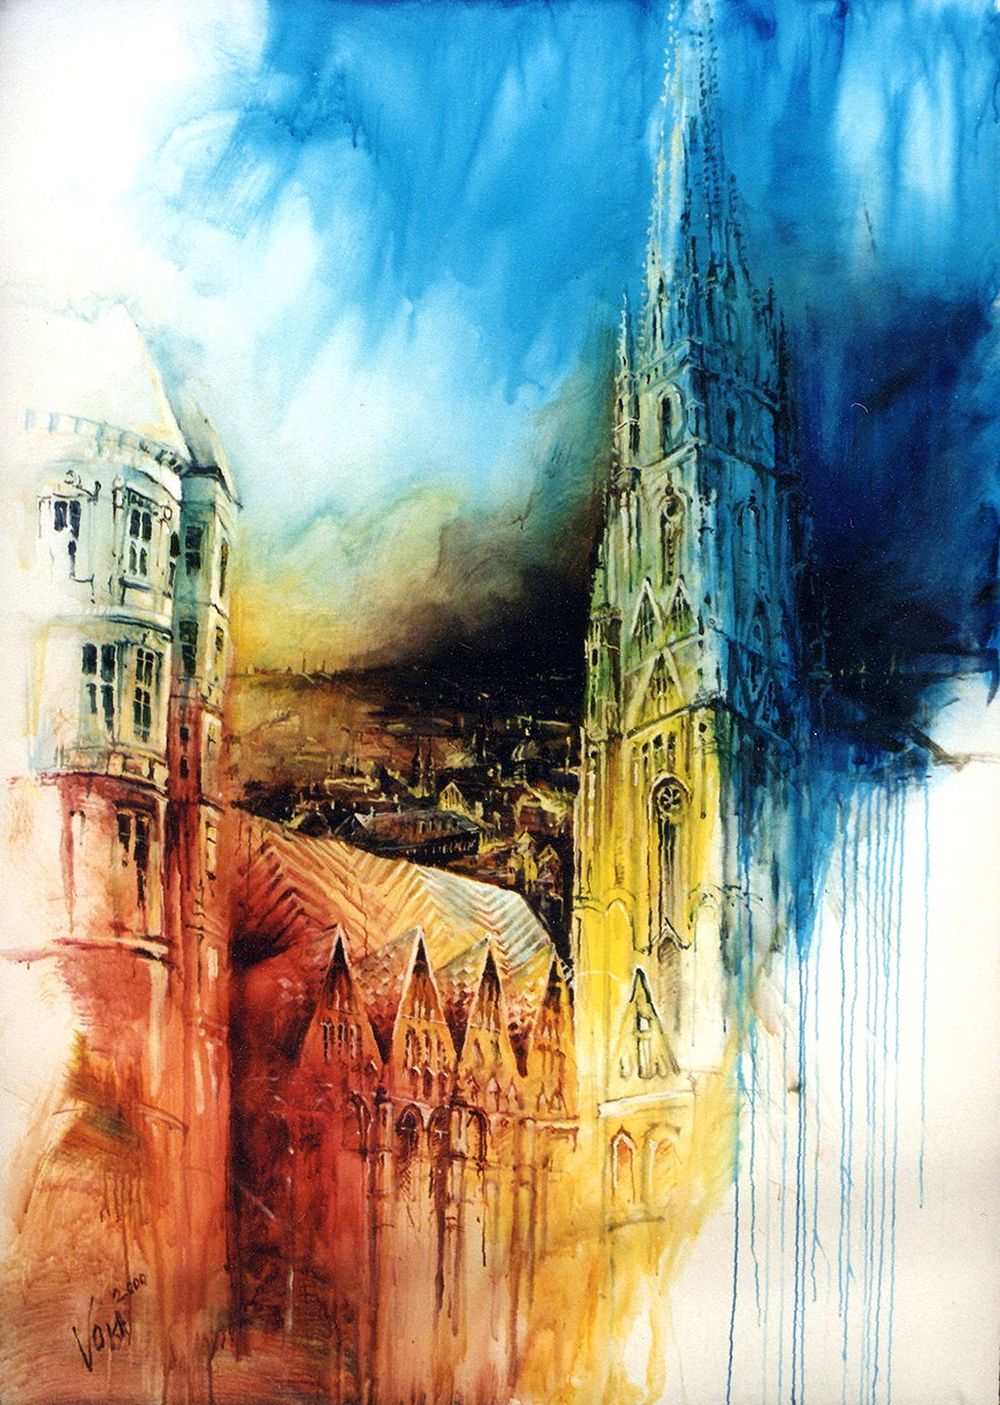 Vienna, 270X190cm / 106,2X74,8 inch, Acrylic on Canvas